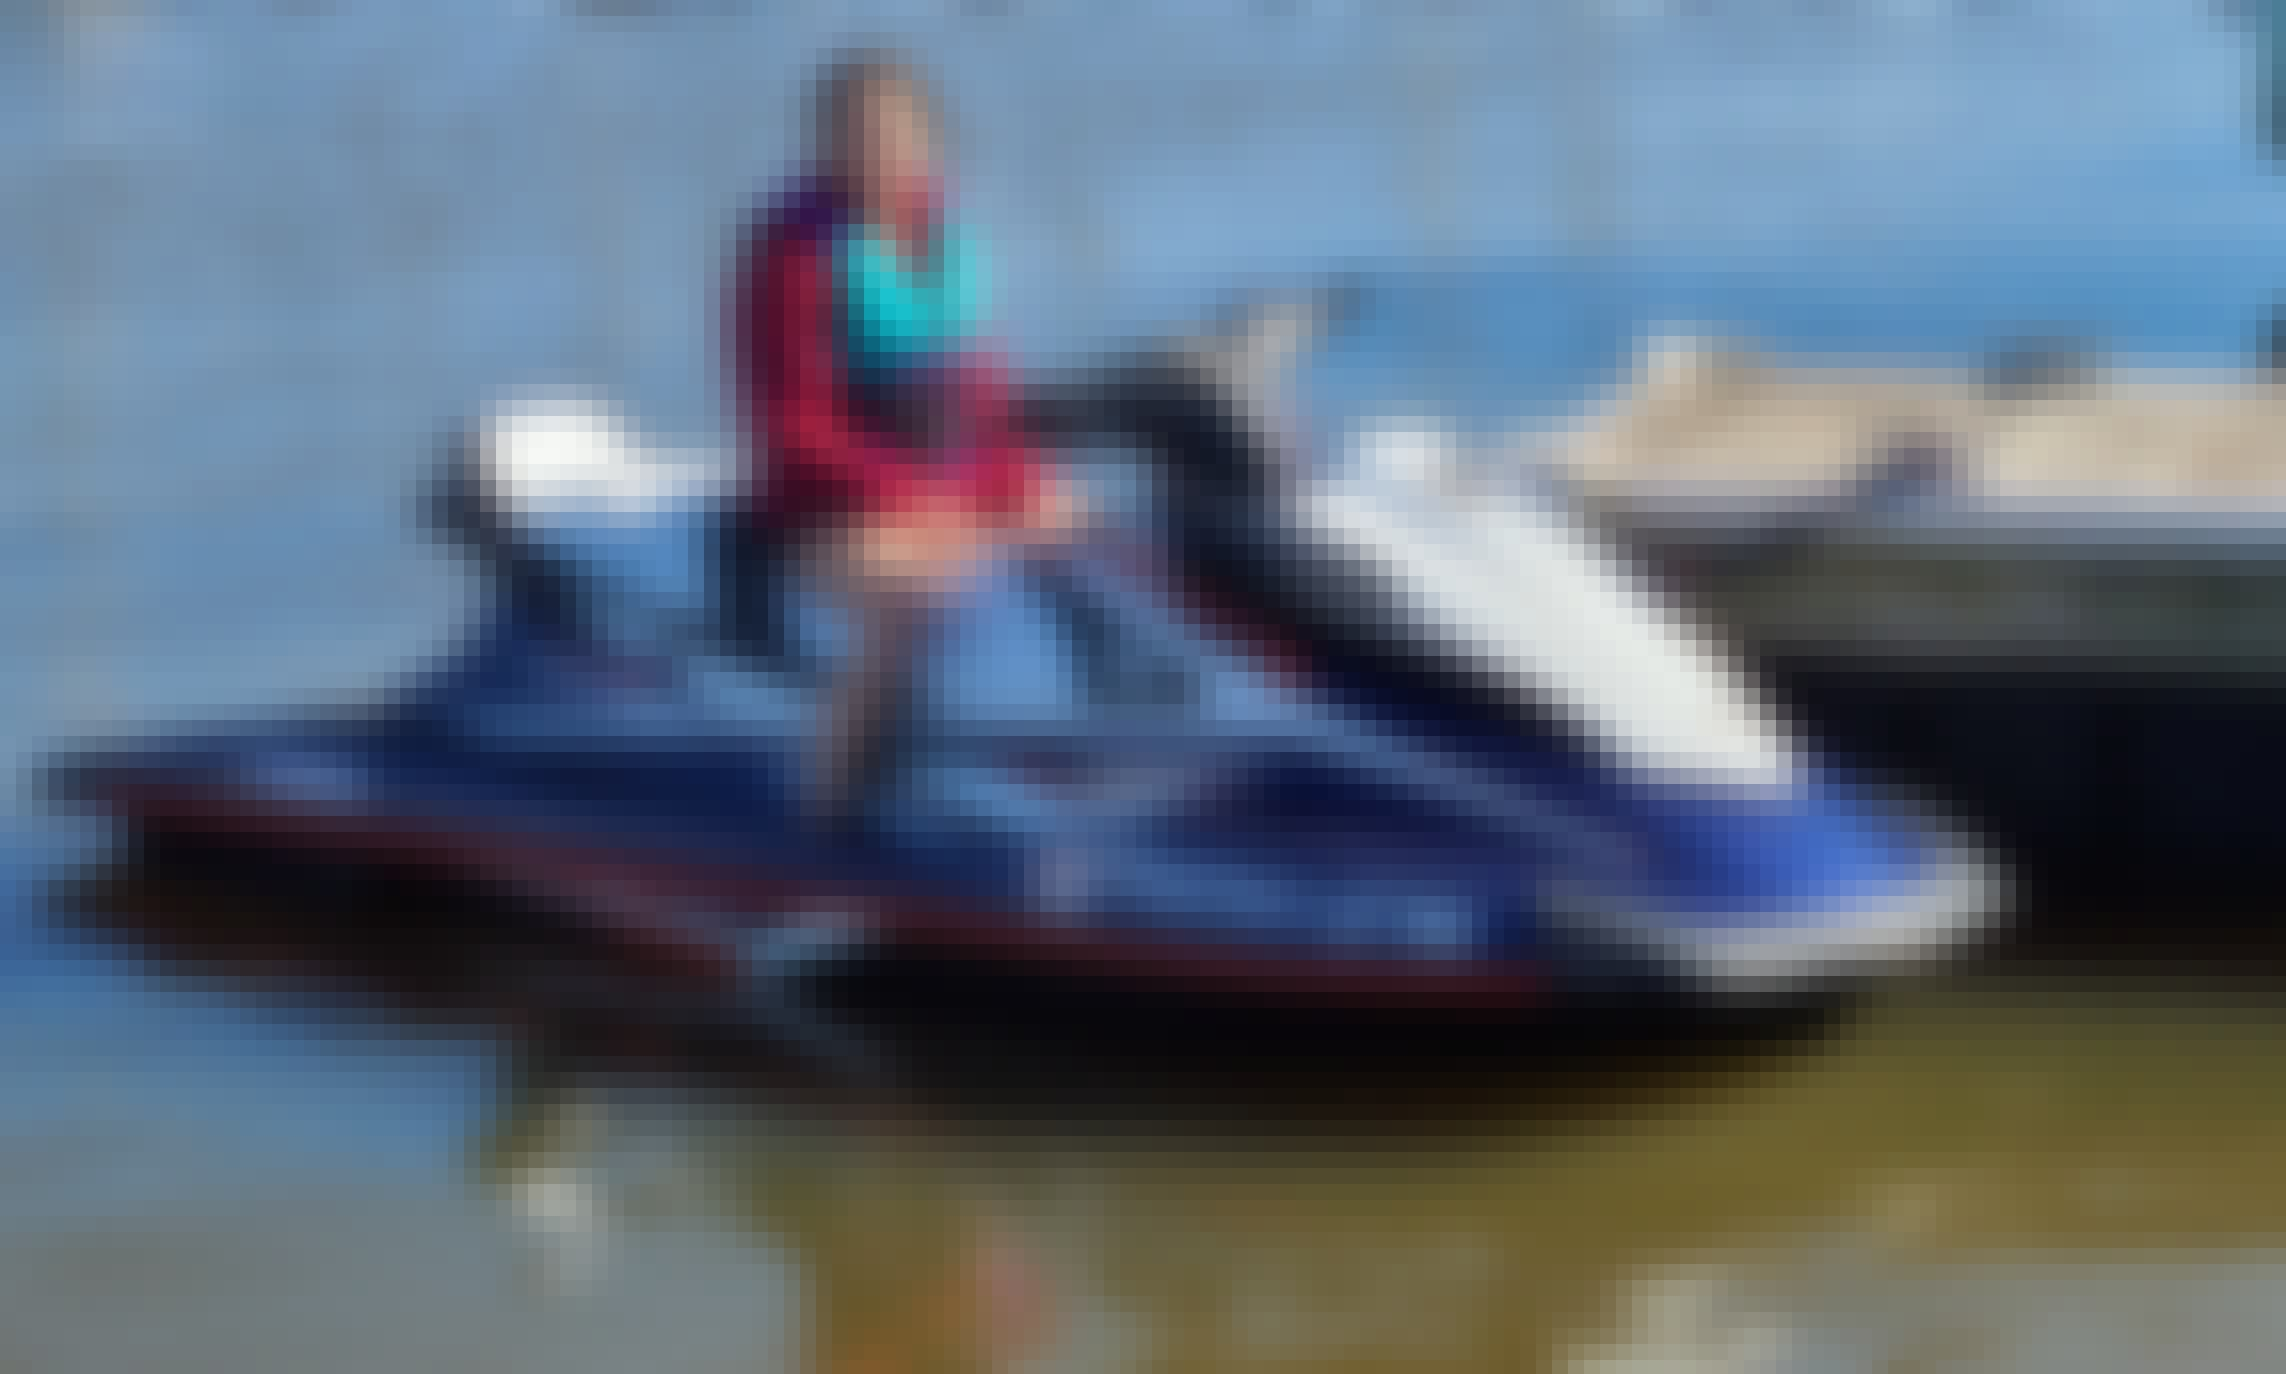 Yamaha Waverunner Jetski Rental on Clear Lake Texas